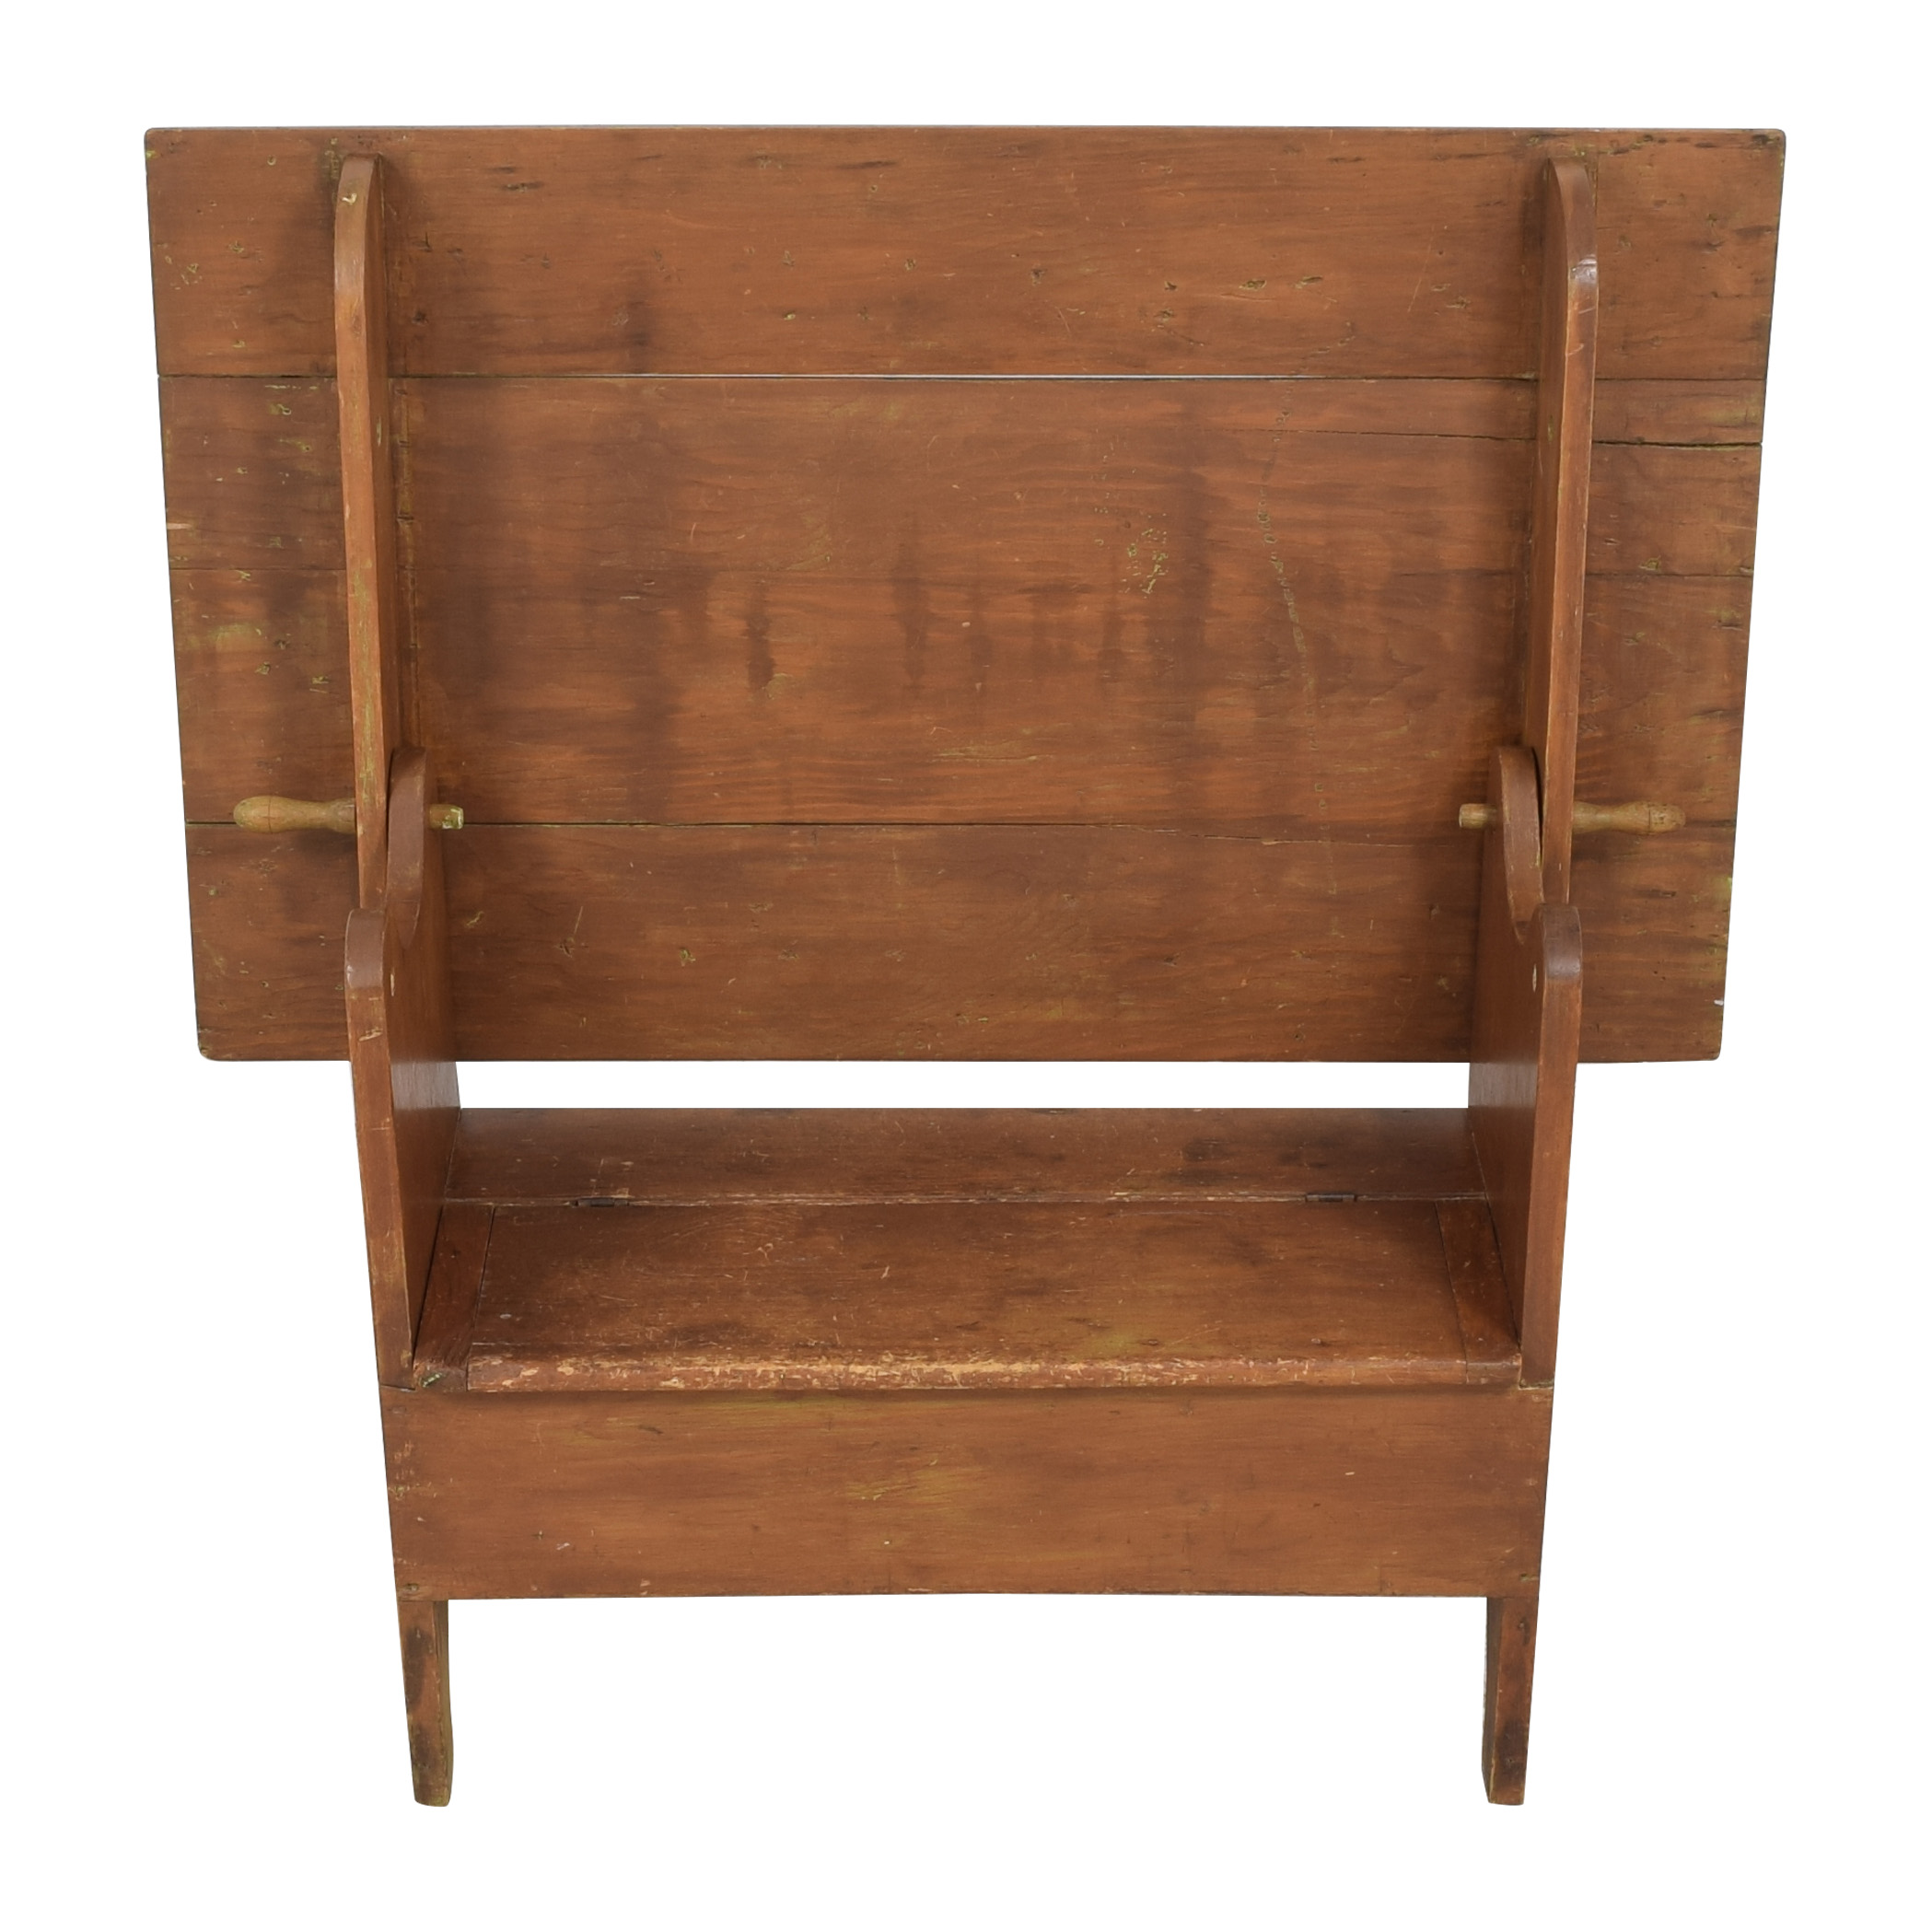 Hutch Table Monk's Bench with Trunk dimensions